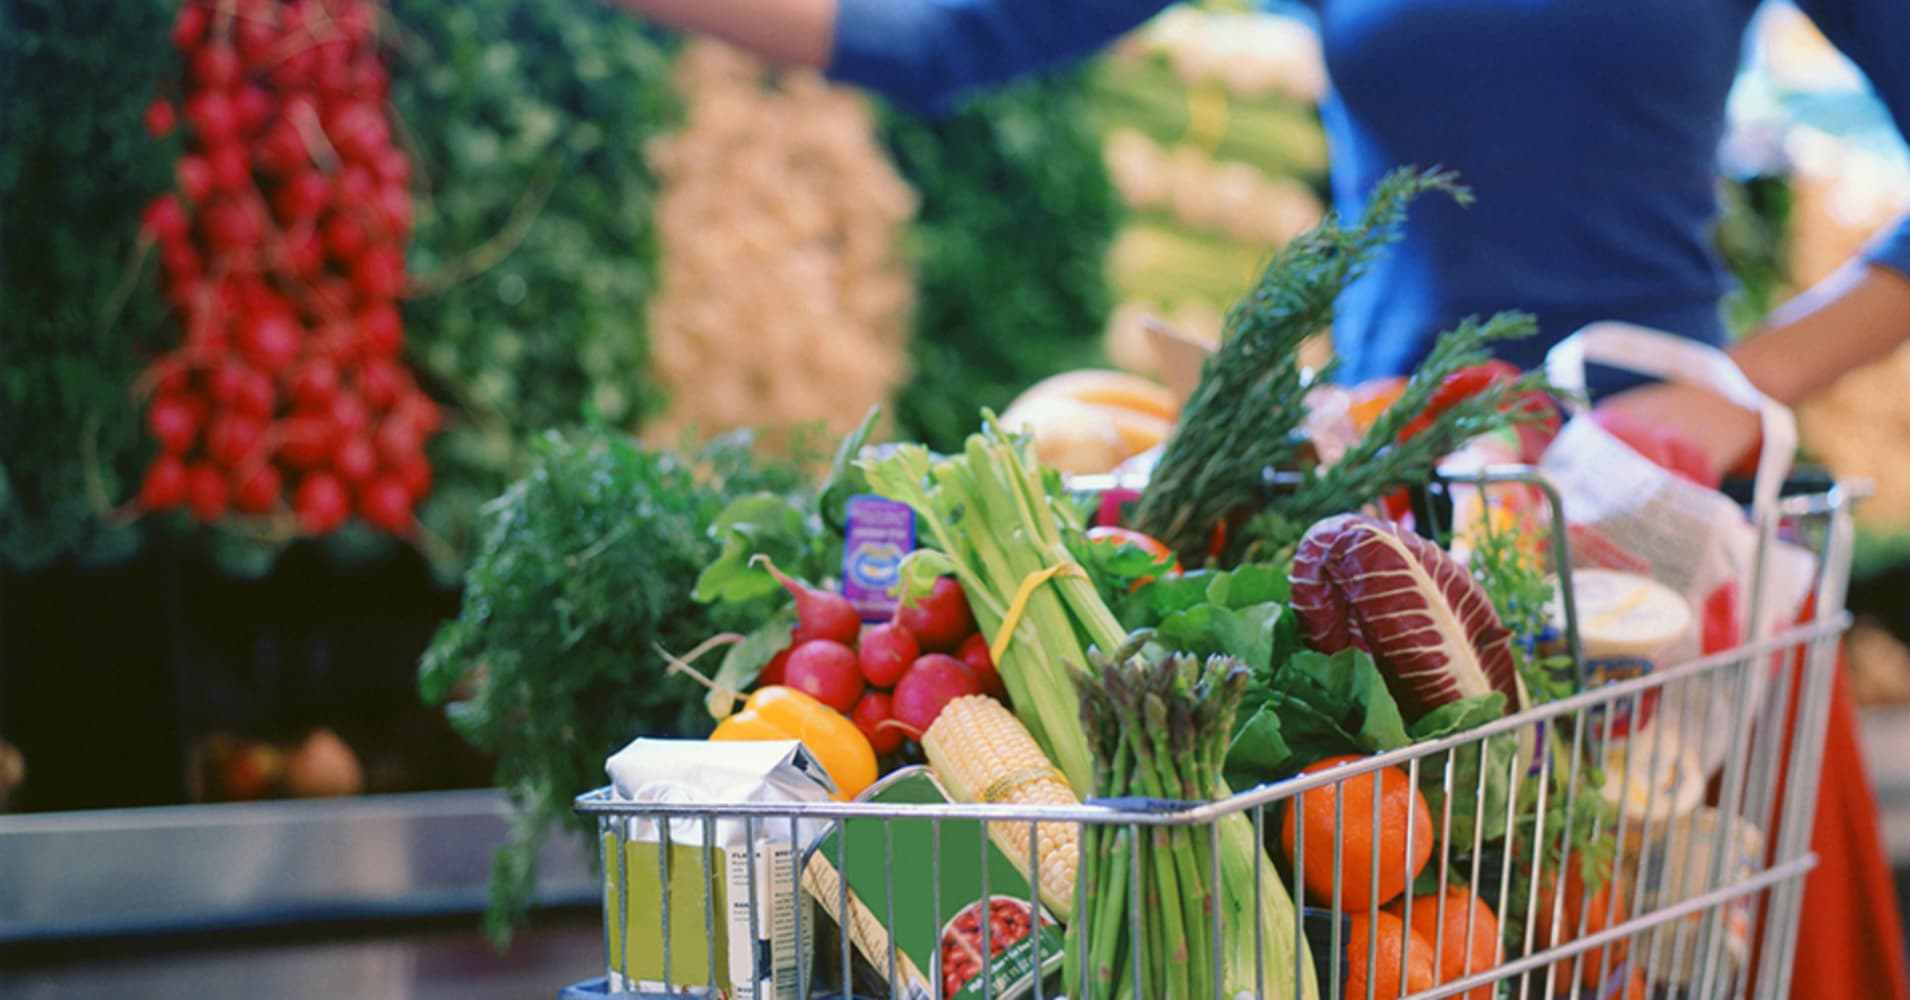 This Free And Easy Hack Could Save You Money on Groceries